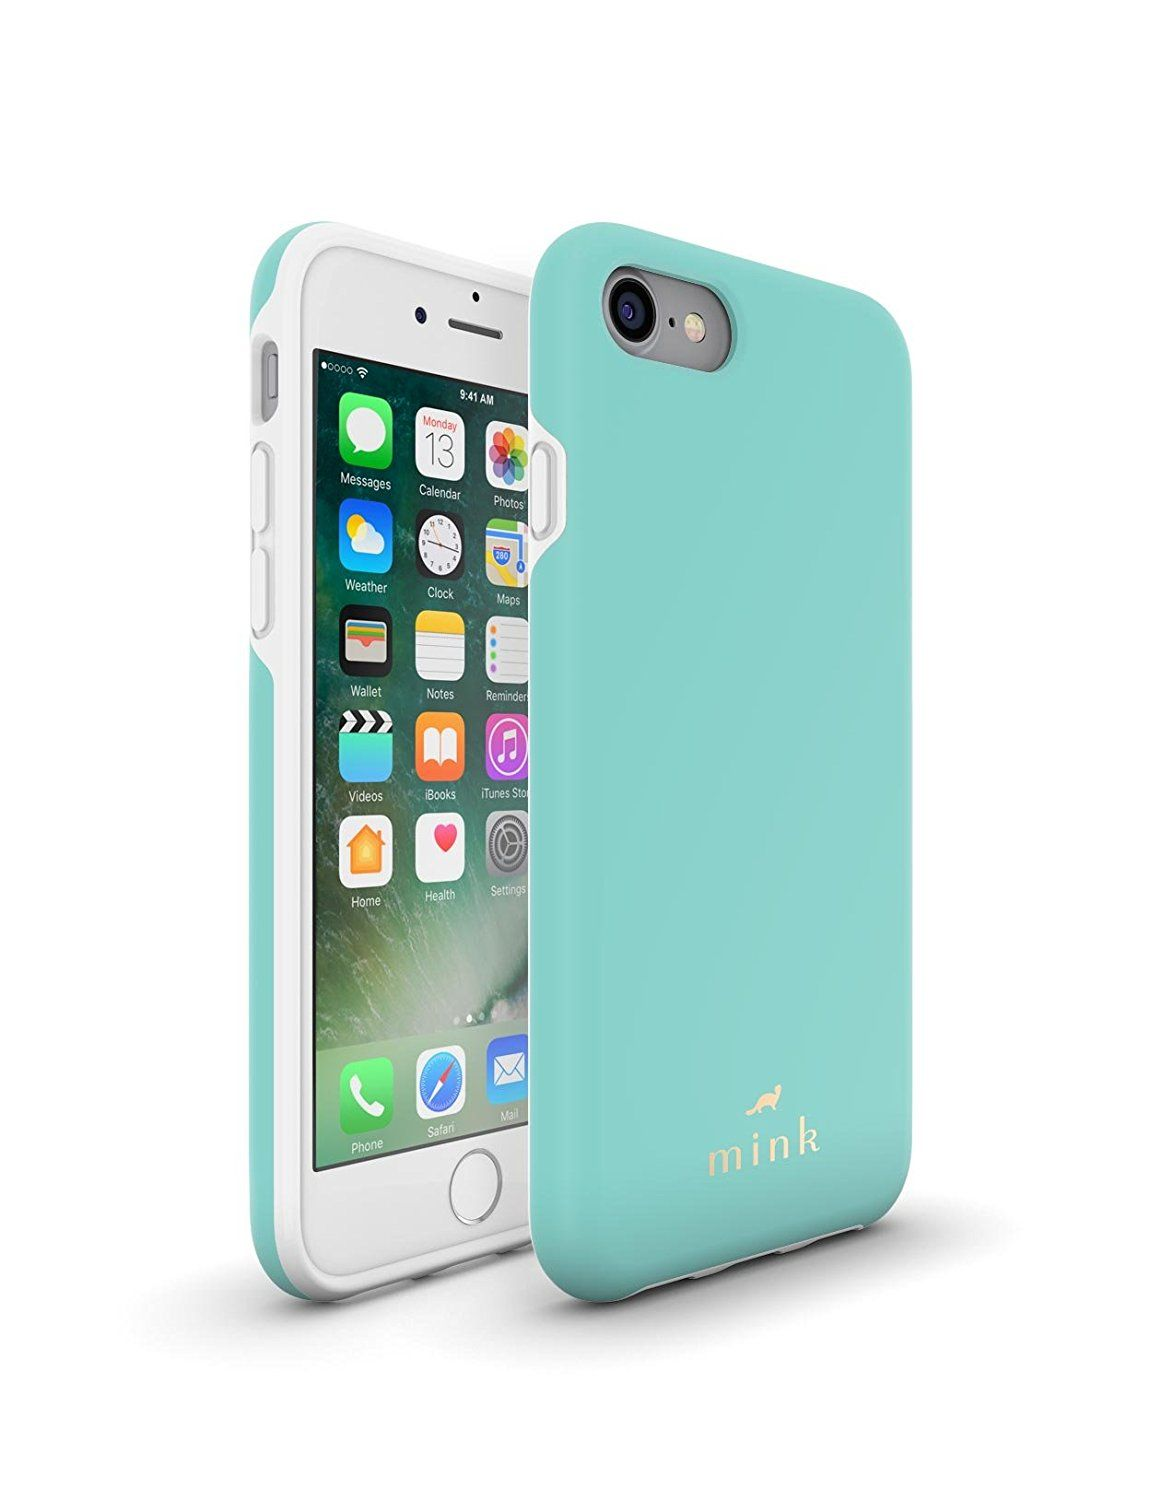 reputable site 926f0 60eb1 iPhone 7, iPhone 8 Protective Phone Case from Mink - Madison Series ...